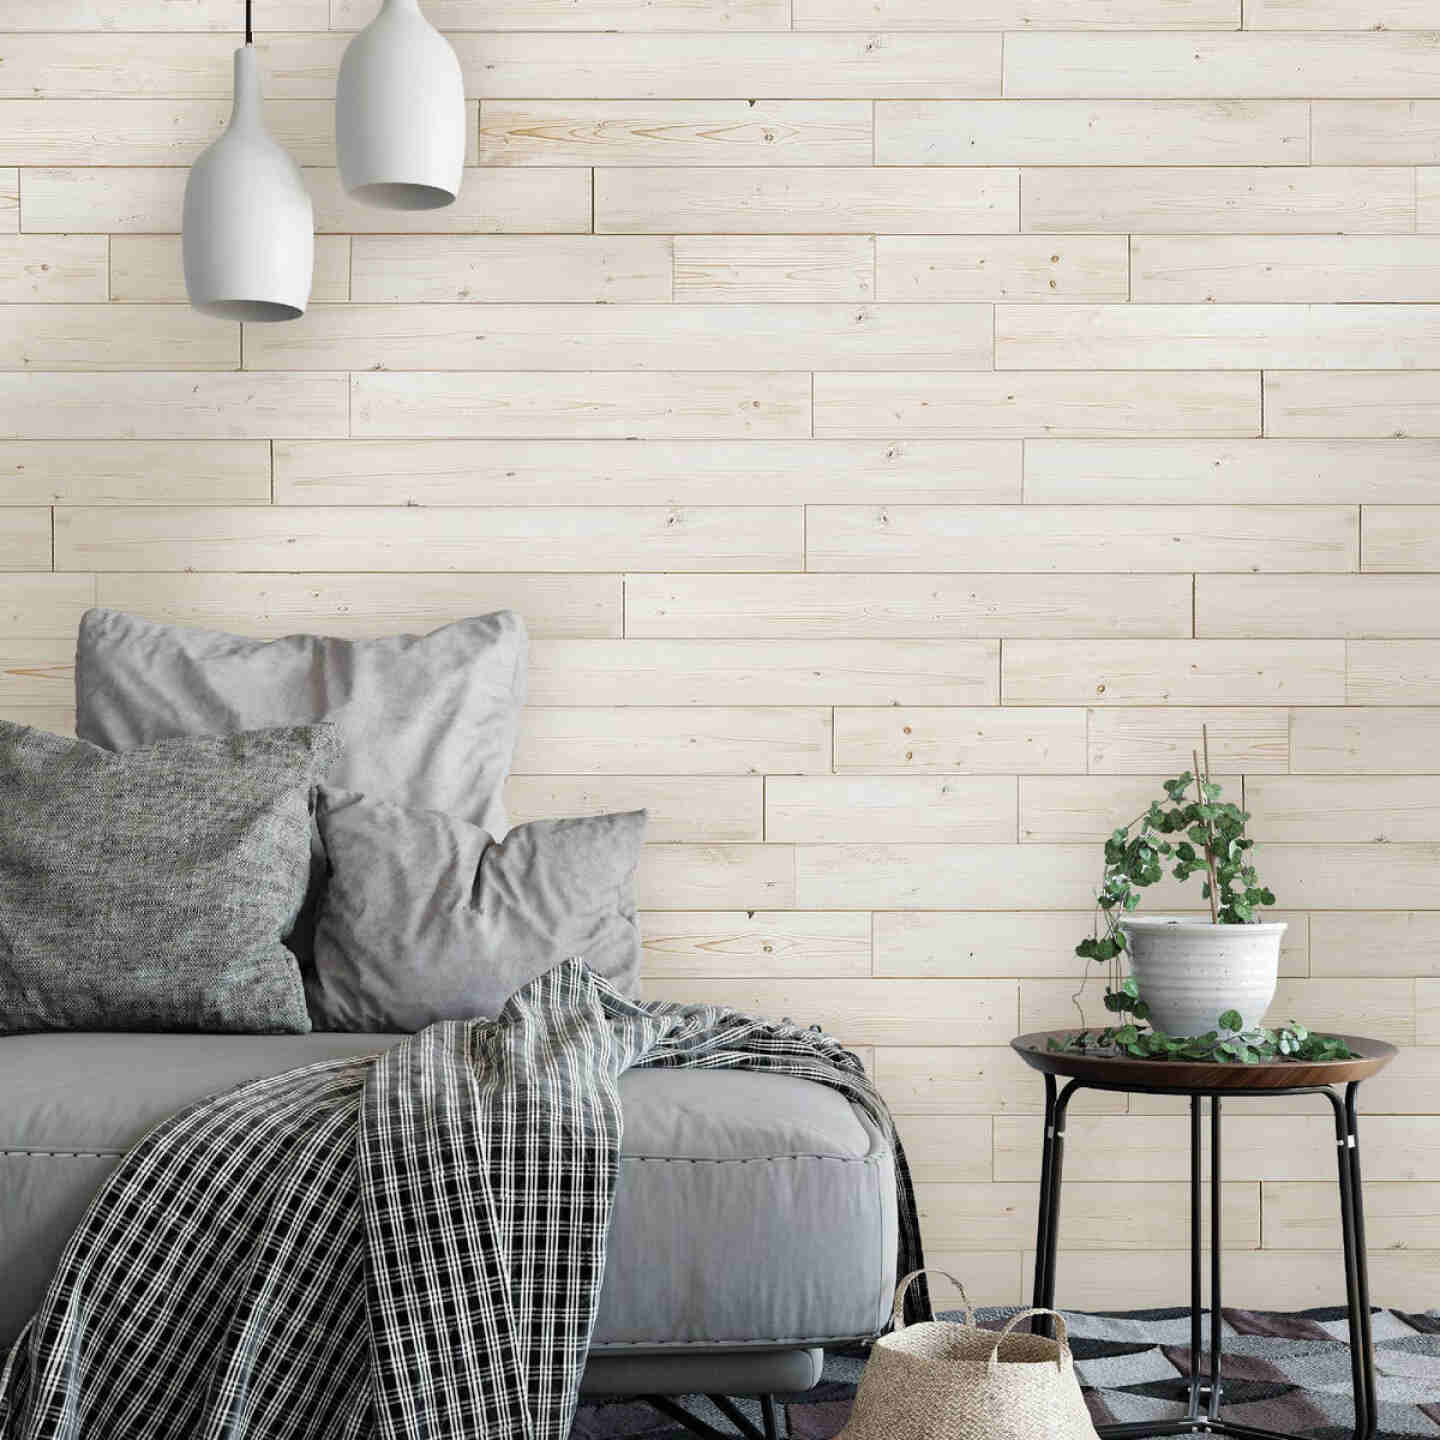 Global Product Sourcing 5.375 In. W x 5/16 In. Thick White Reclaimed Wood Shiplap Board Image 2